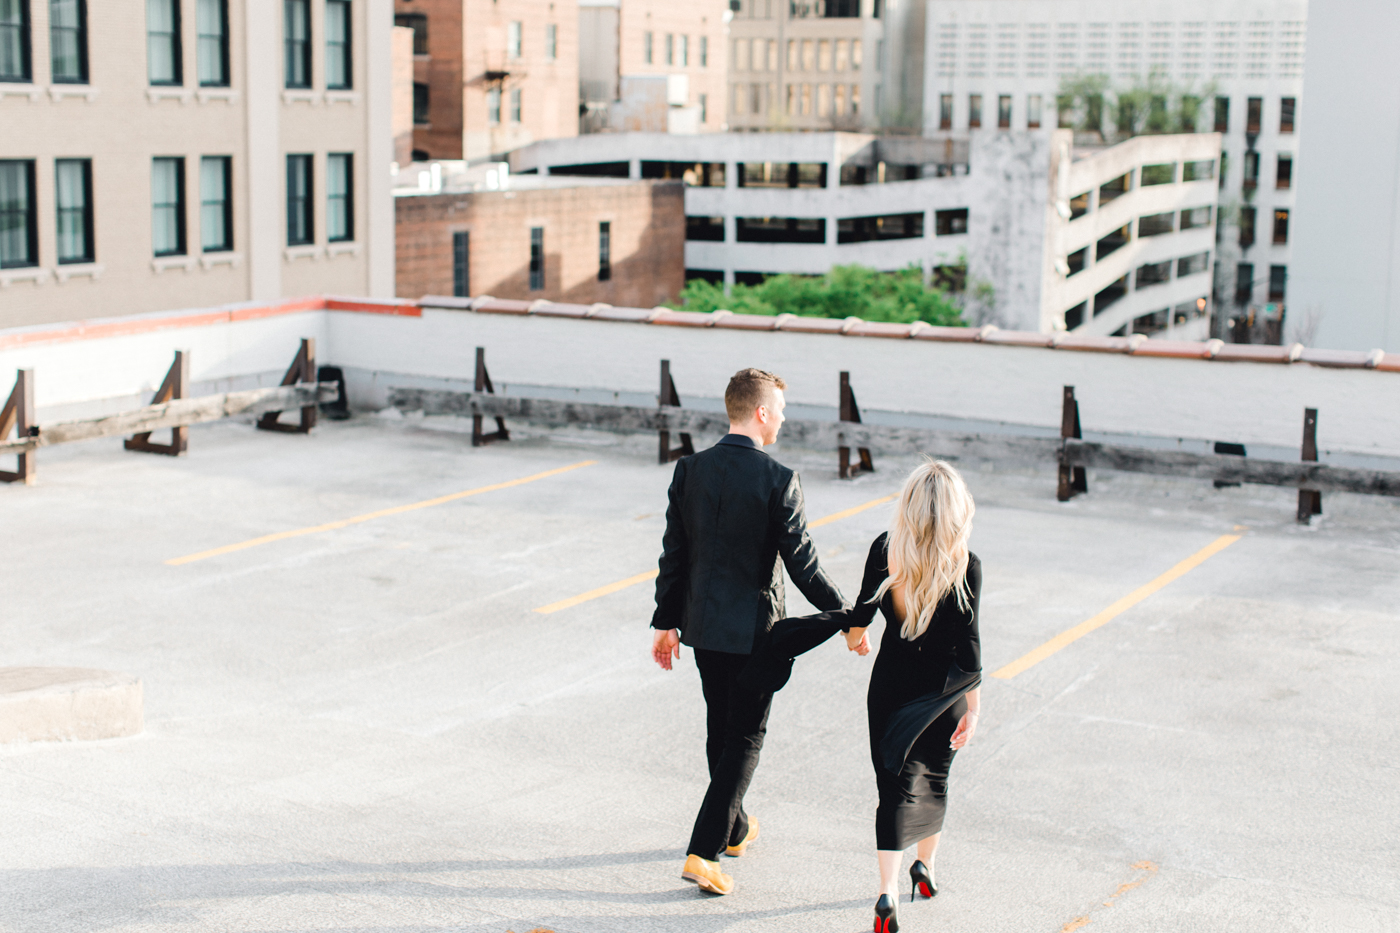 four corners photography best atlanta wedding photographer downtown atlanta engagement session engagement proposal ventanas downtown atlanta wedding atlanta wedding photographer-25.jpg